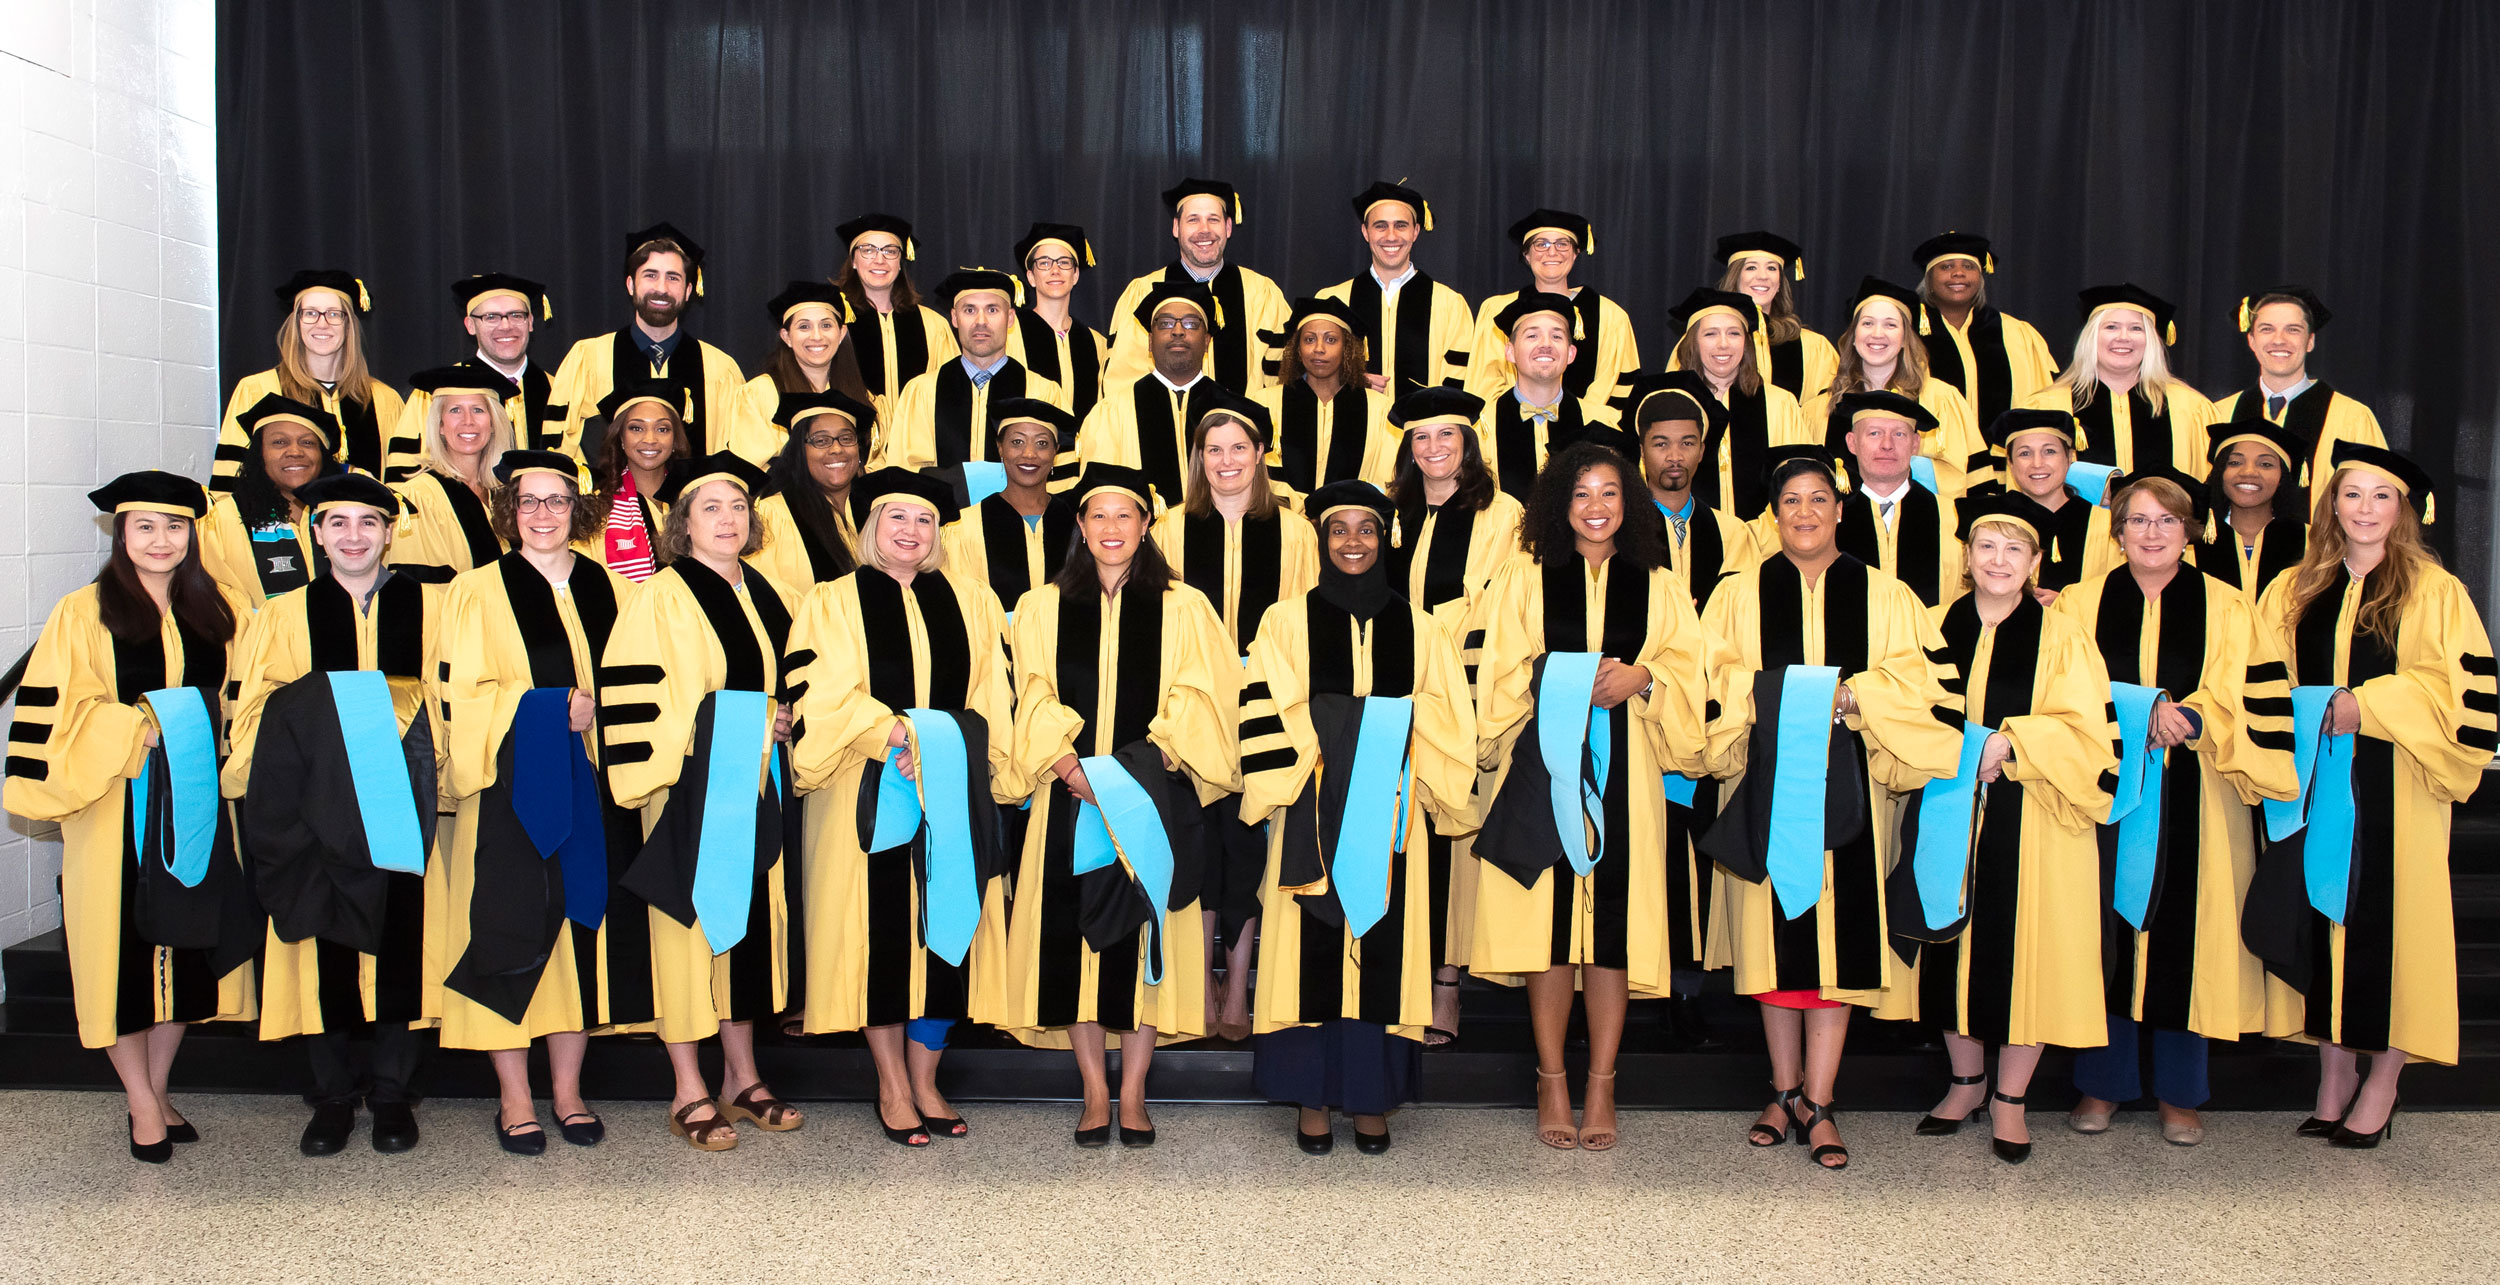 2019 Doctoral Degree Candidates